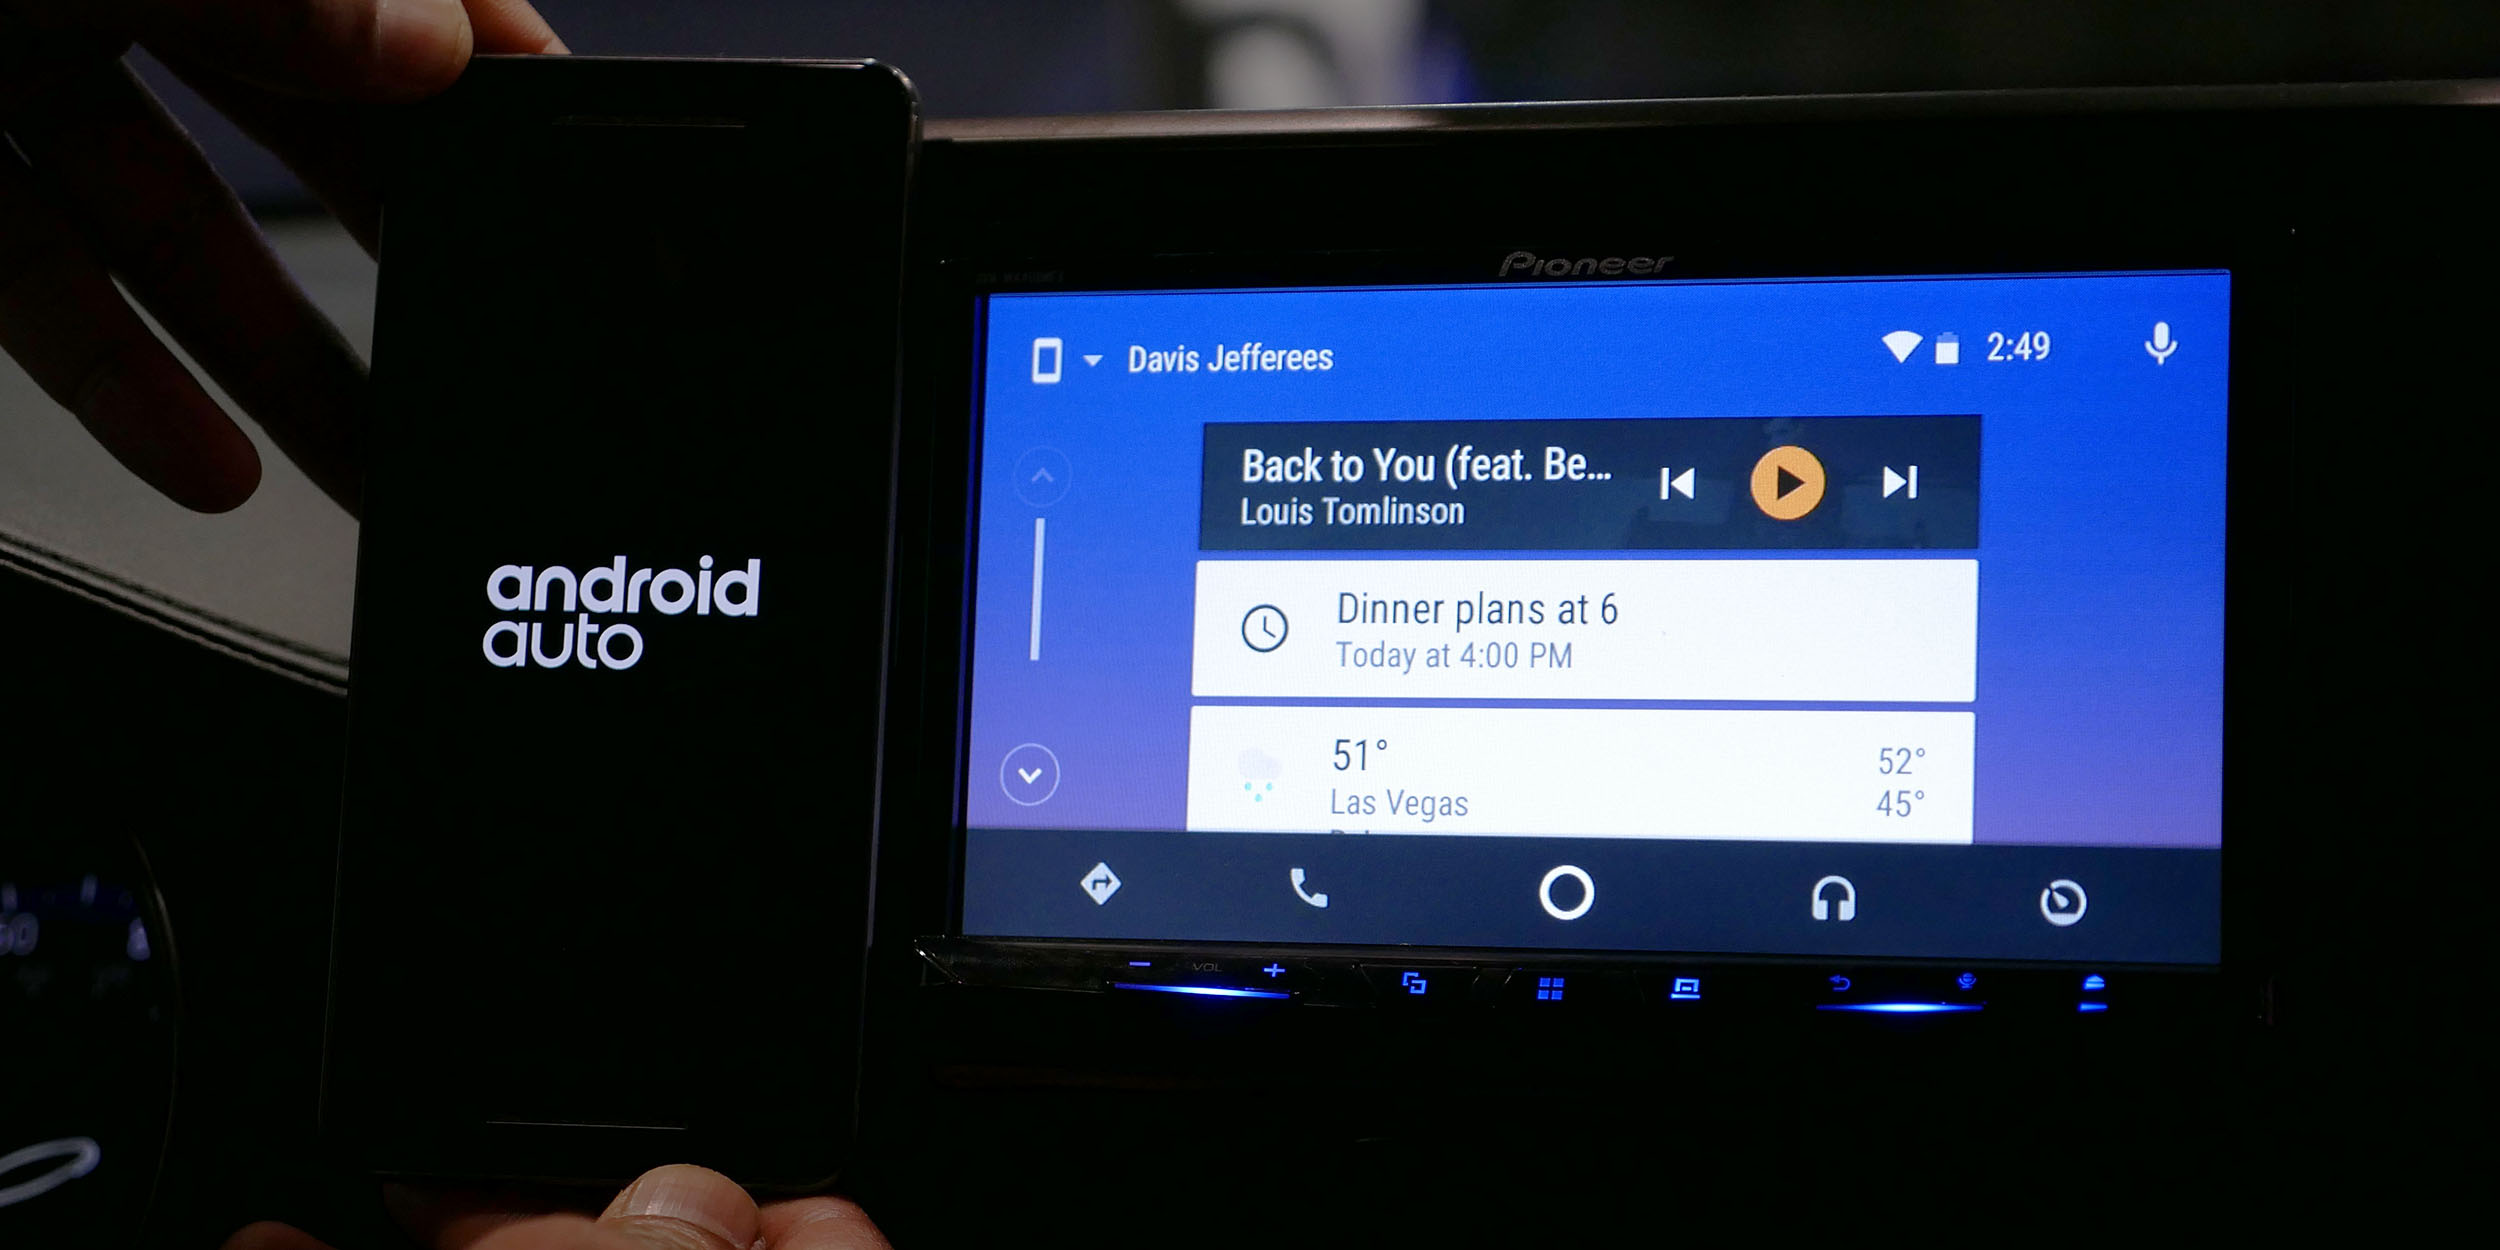 Google Adds Wi Fi Projection To Android Auto App For Android Auto Wireless Support 9to5google Press j to jump to the feed. android auto wireless support